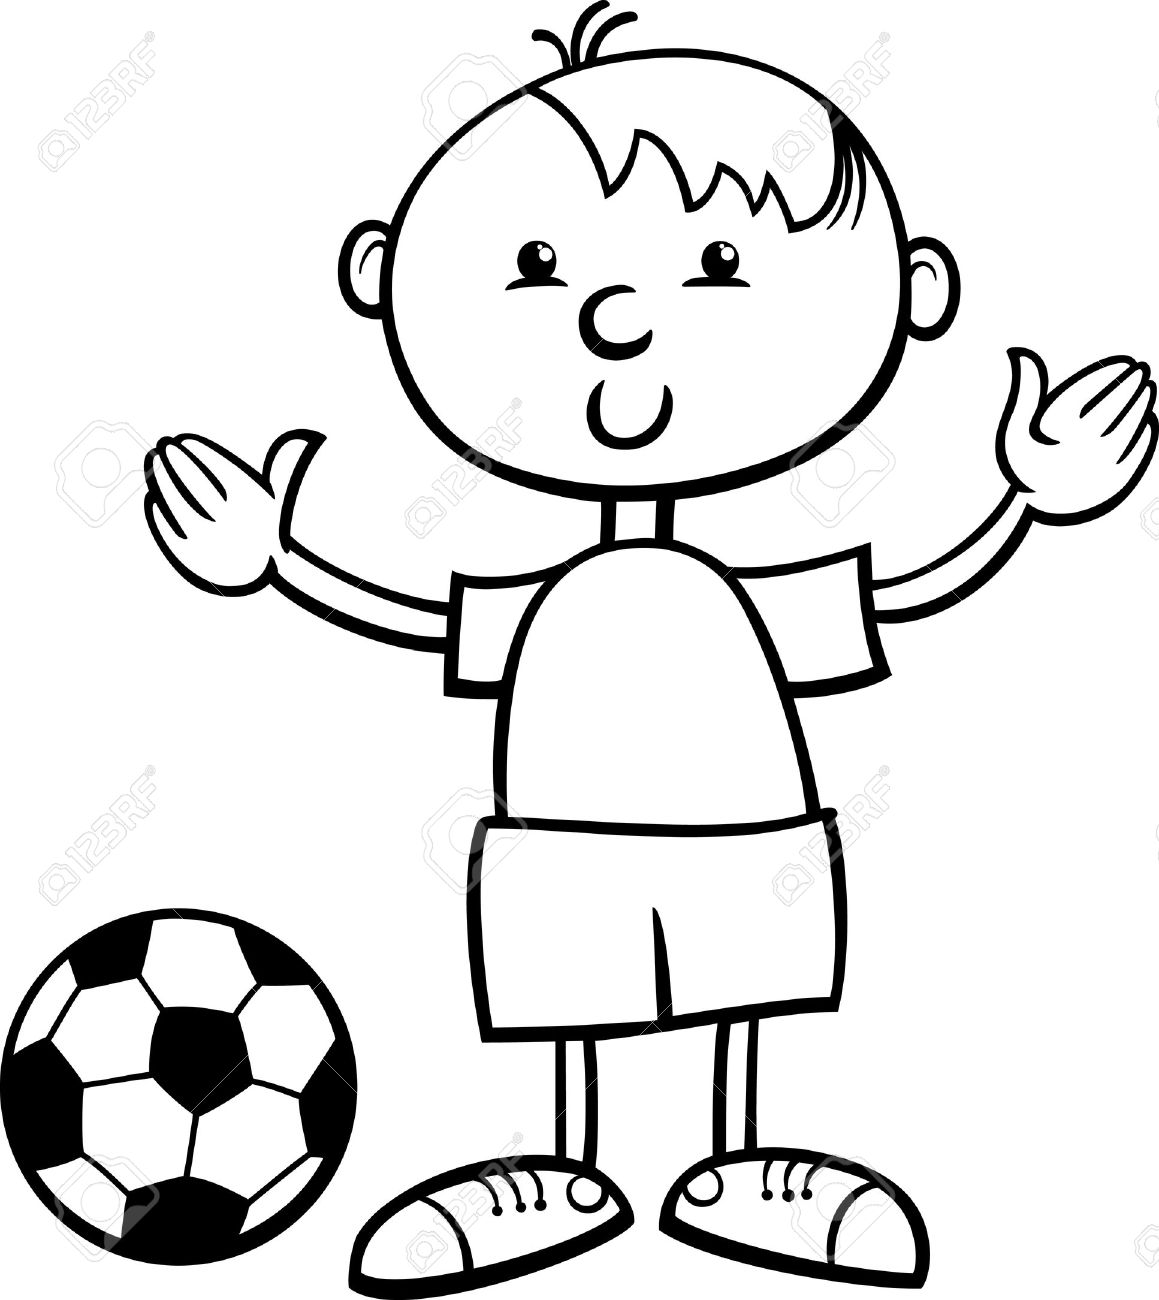 Black And White Cartoon Illustration Of Cute Little Boy With ...